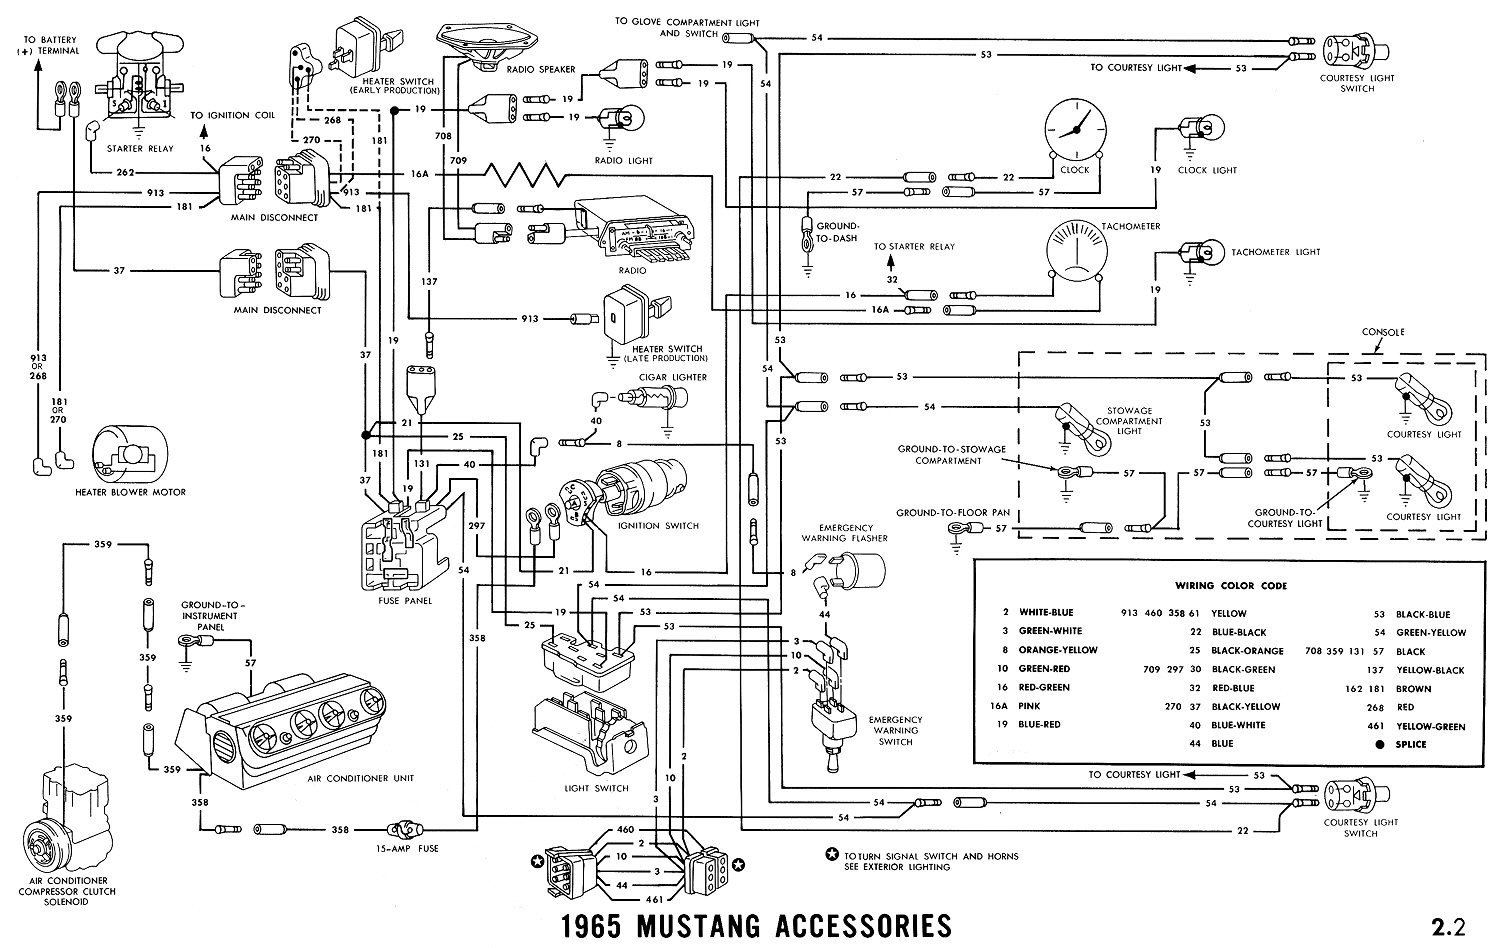 1965 Mustang Wiring Diagrams on 1966 mustang radio wiring diagram